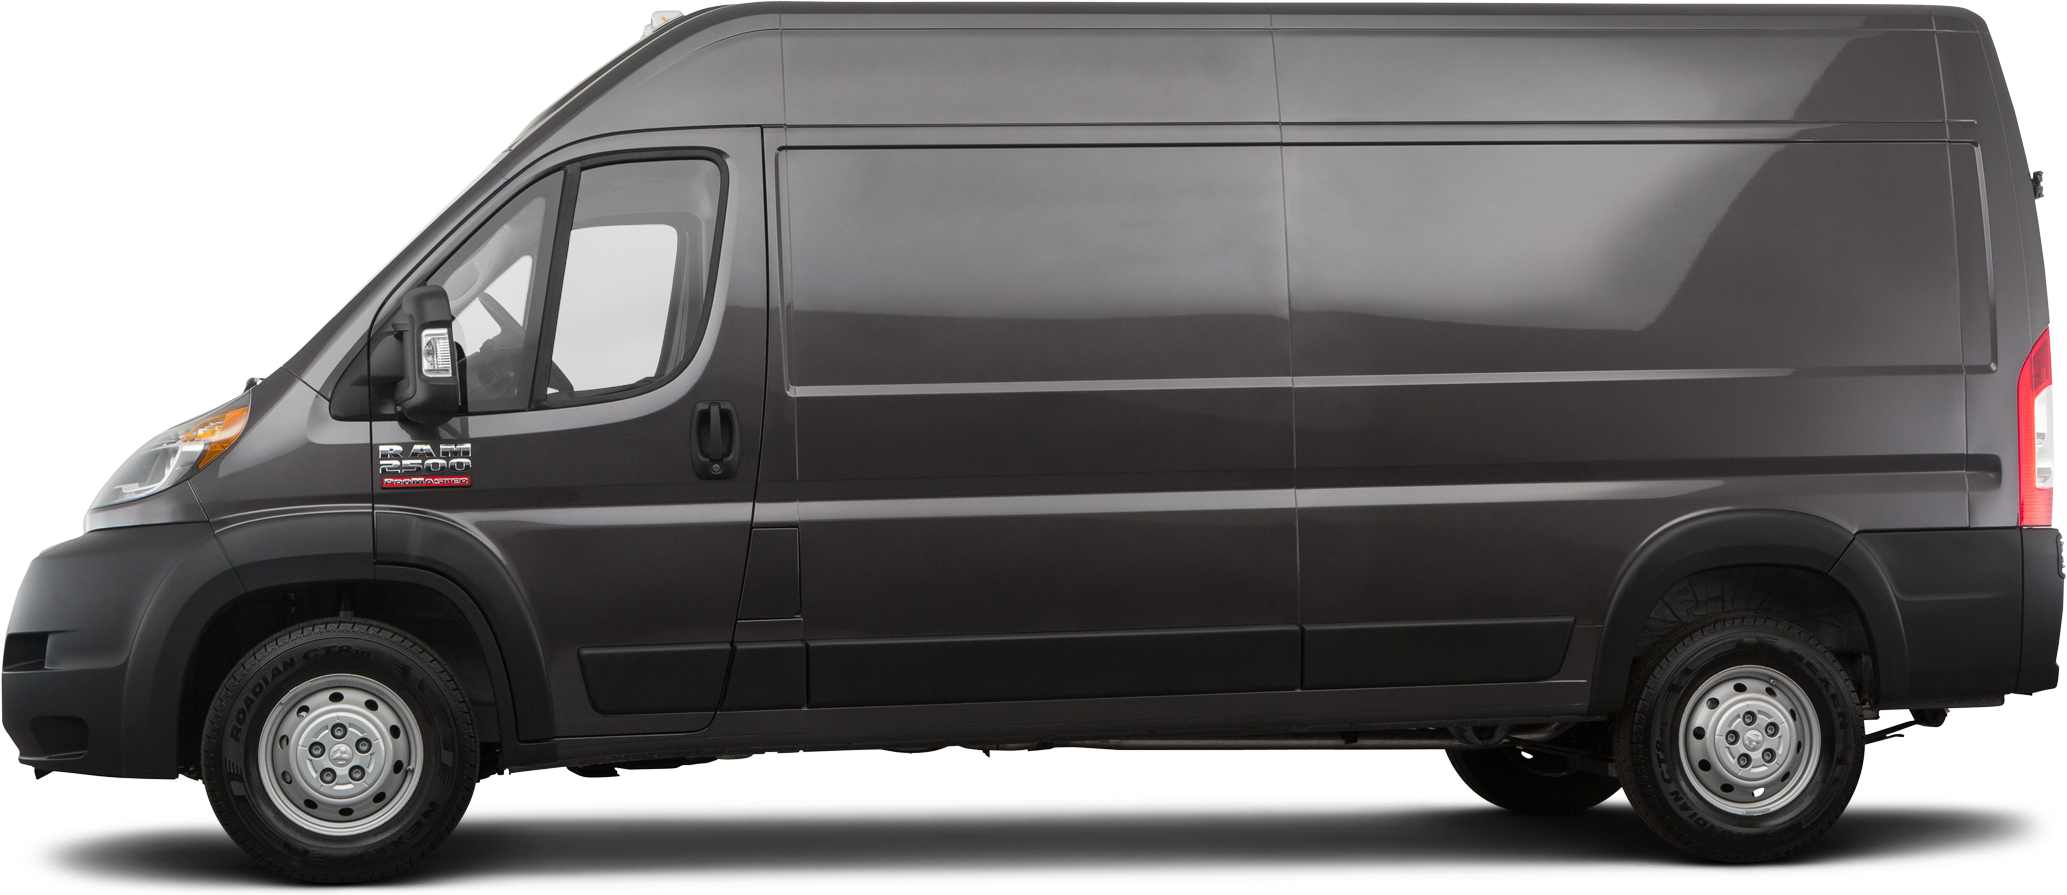 2021 Ram ProMaster 2500 Van High Roof